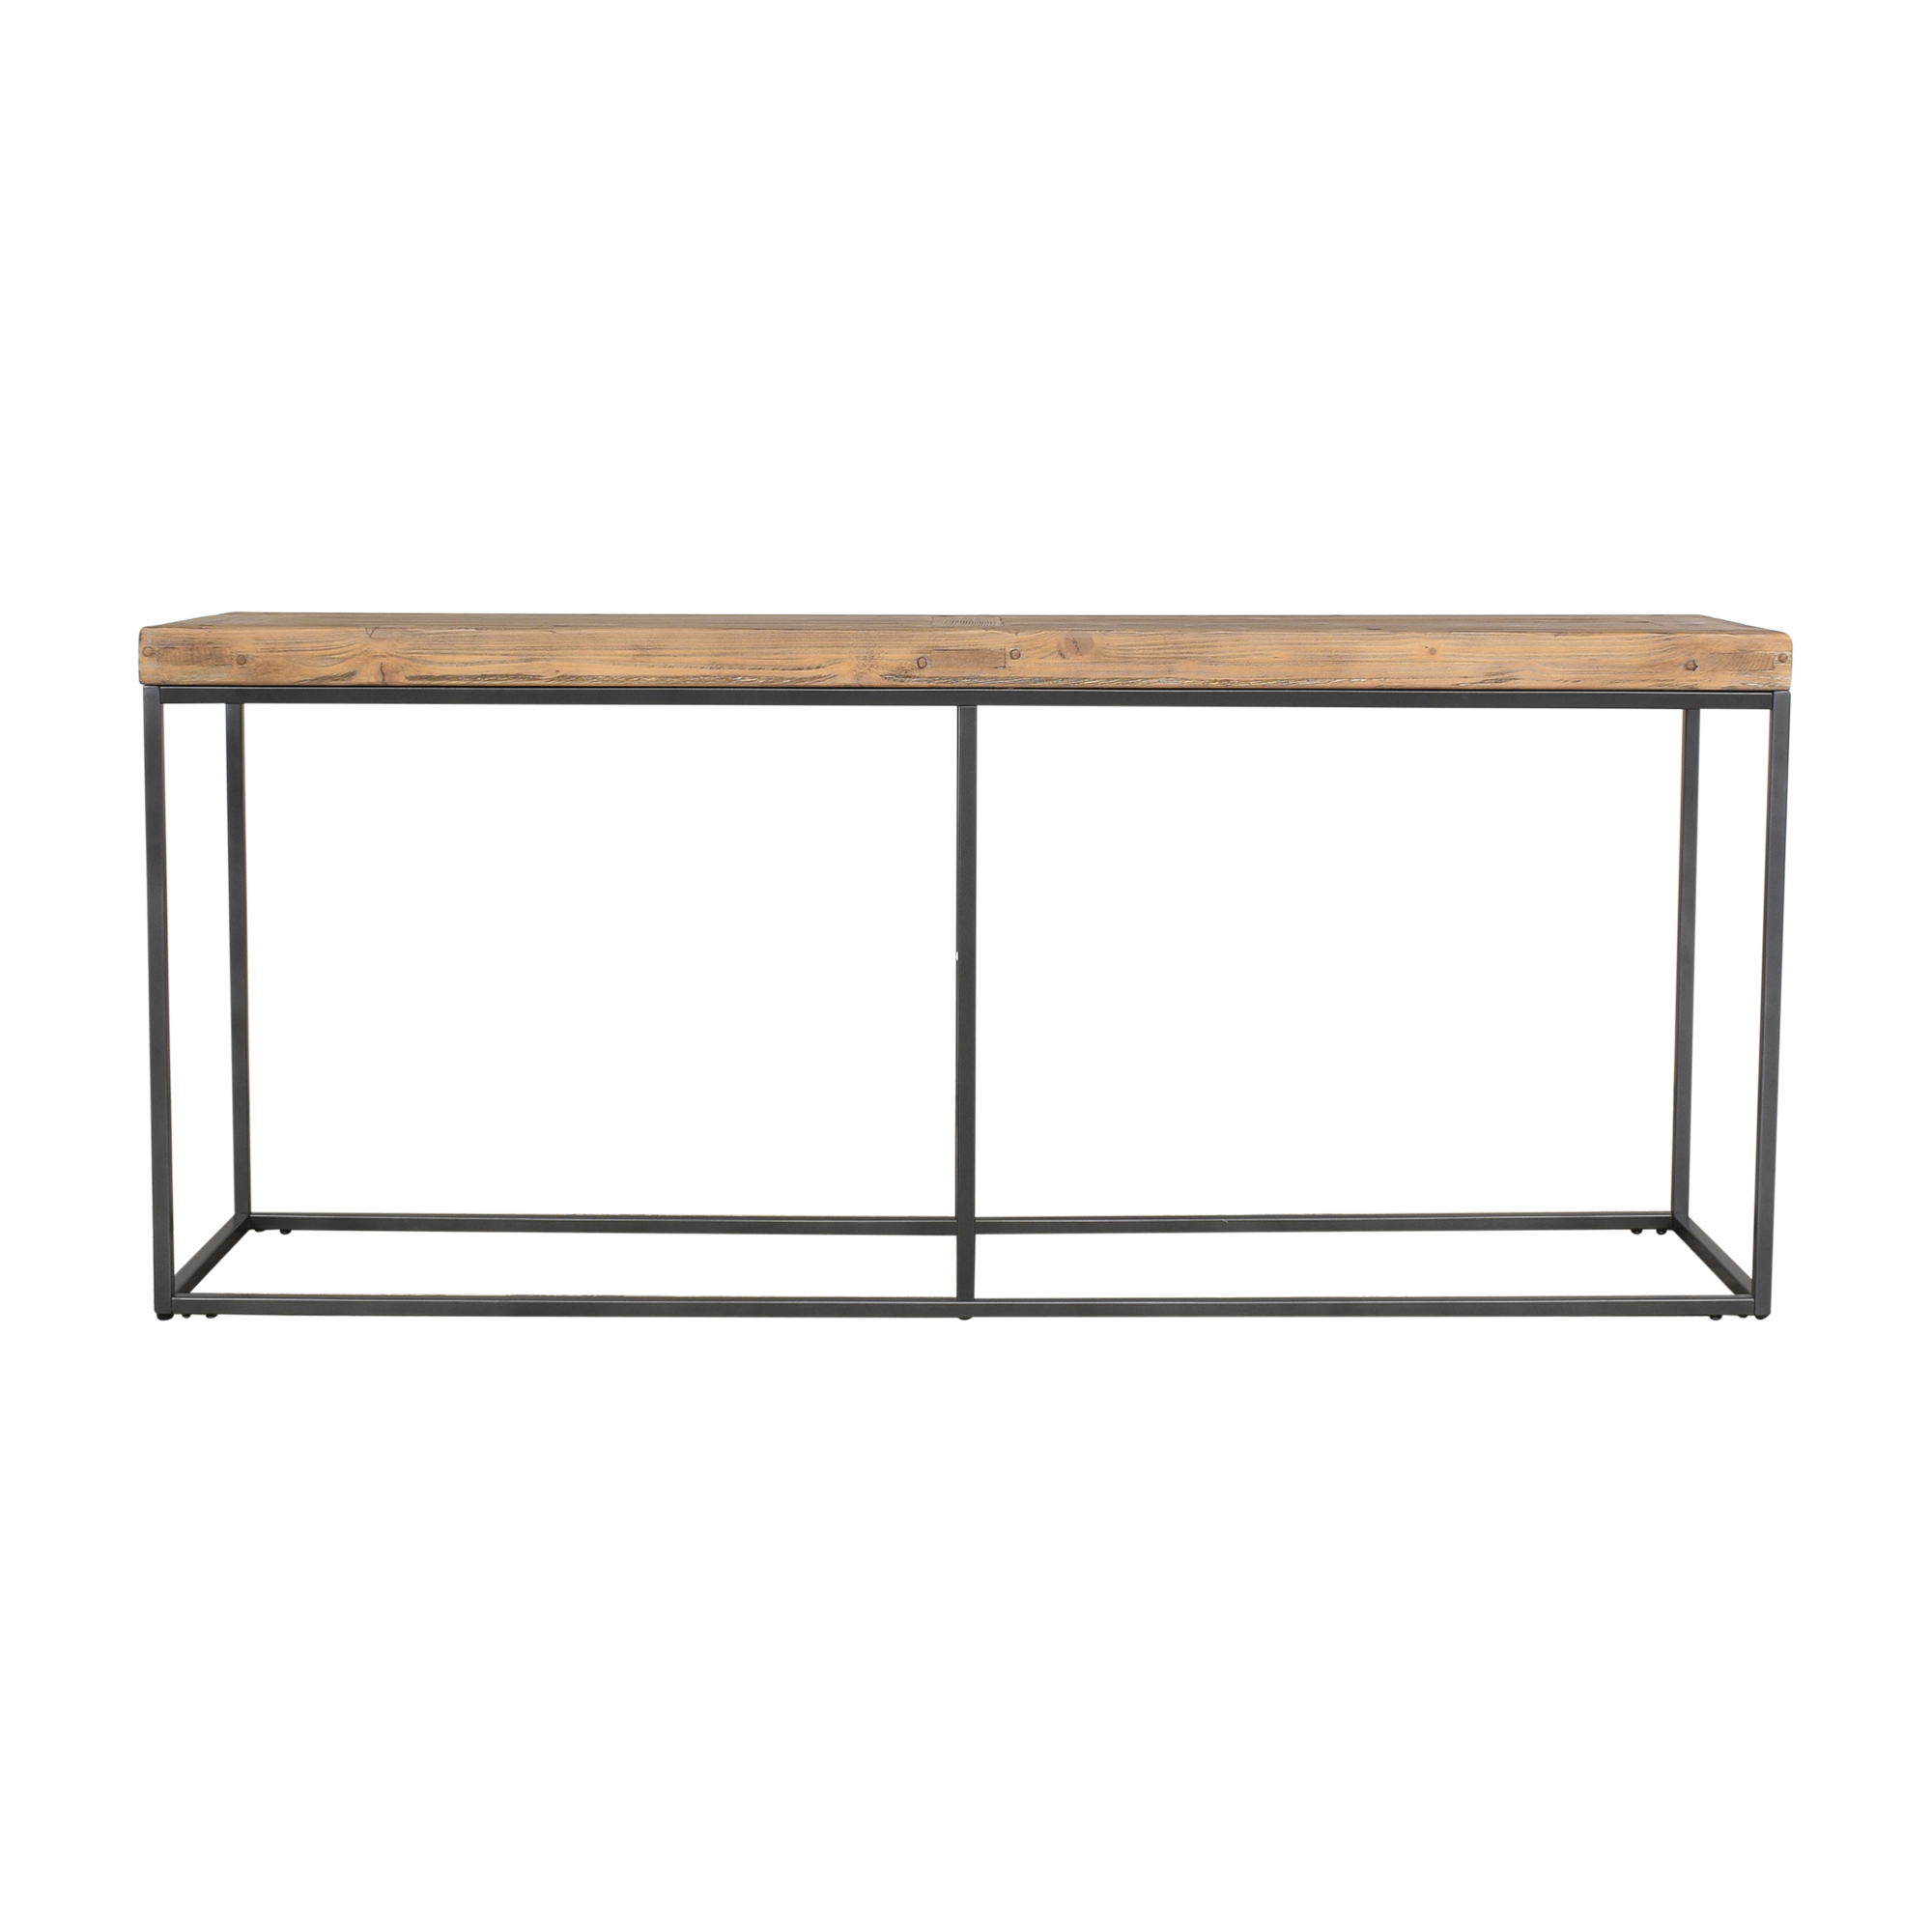 Pottery Barn Pottery Barn Malcolm Console Table dimensions